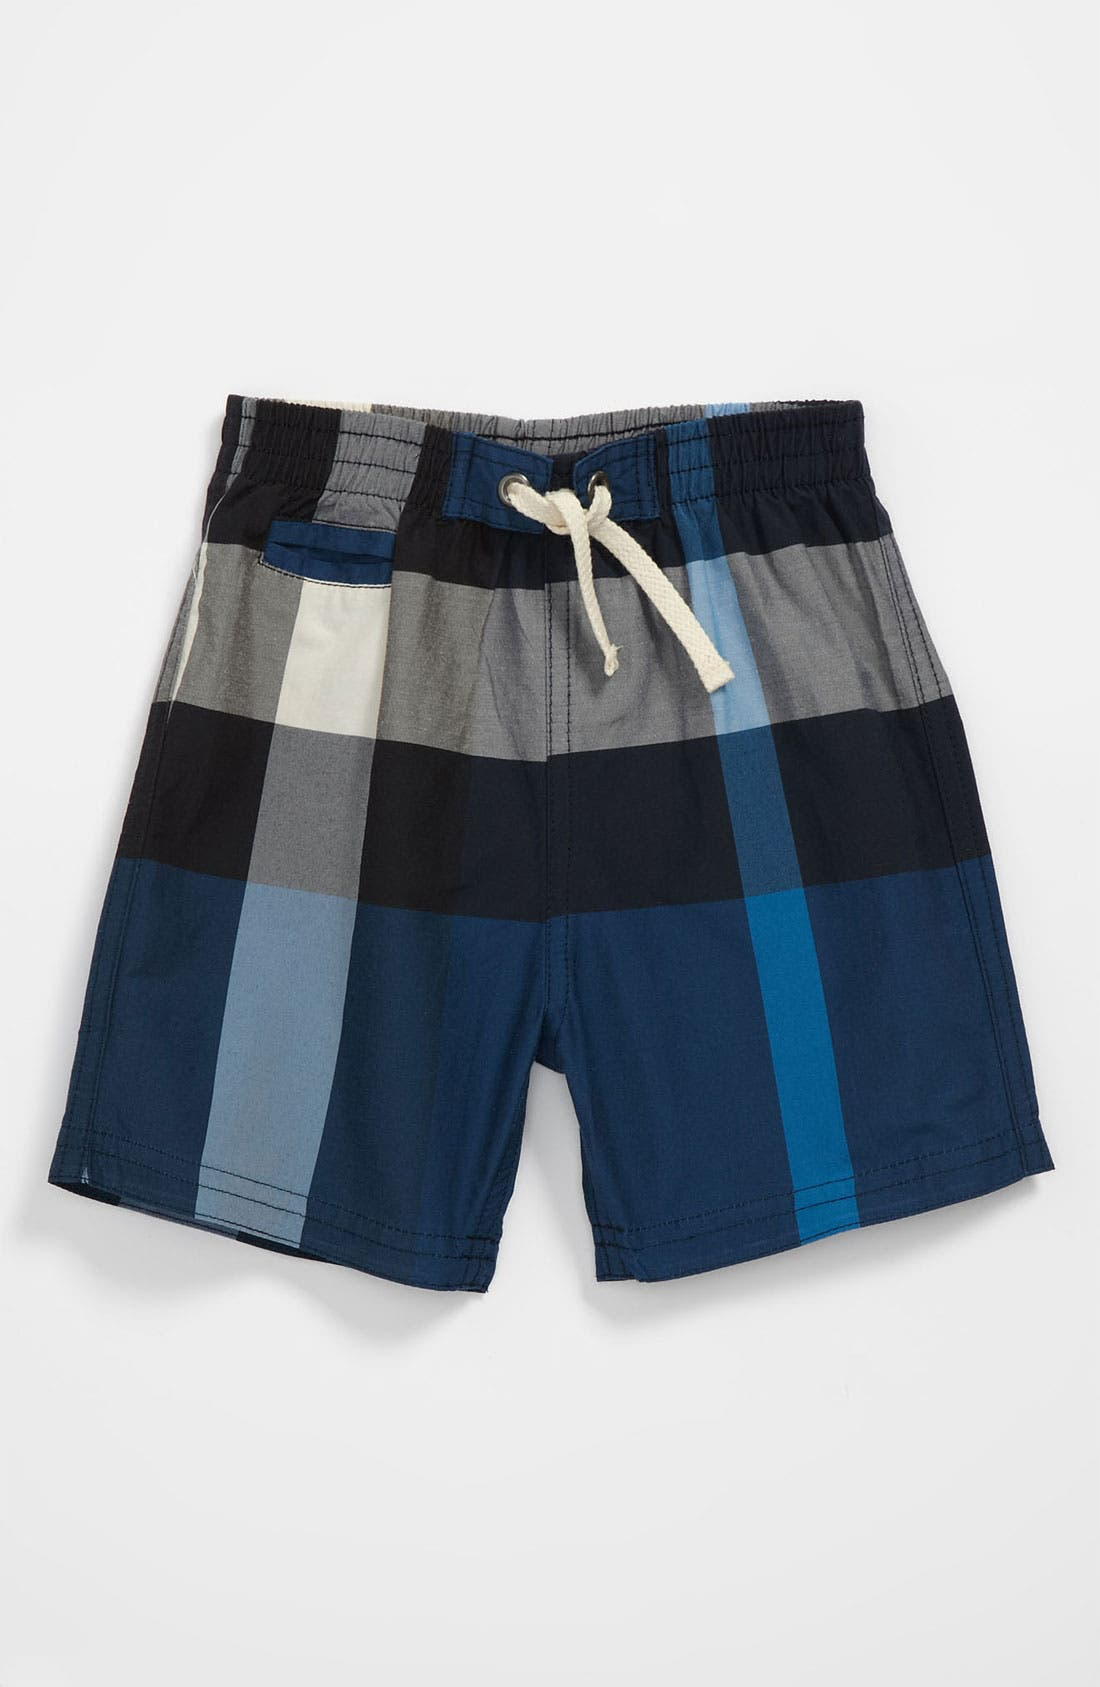 Alternate Image 1 Selected - Burberry 'Saxon' Swim Trunks (Baby)